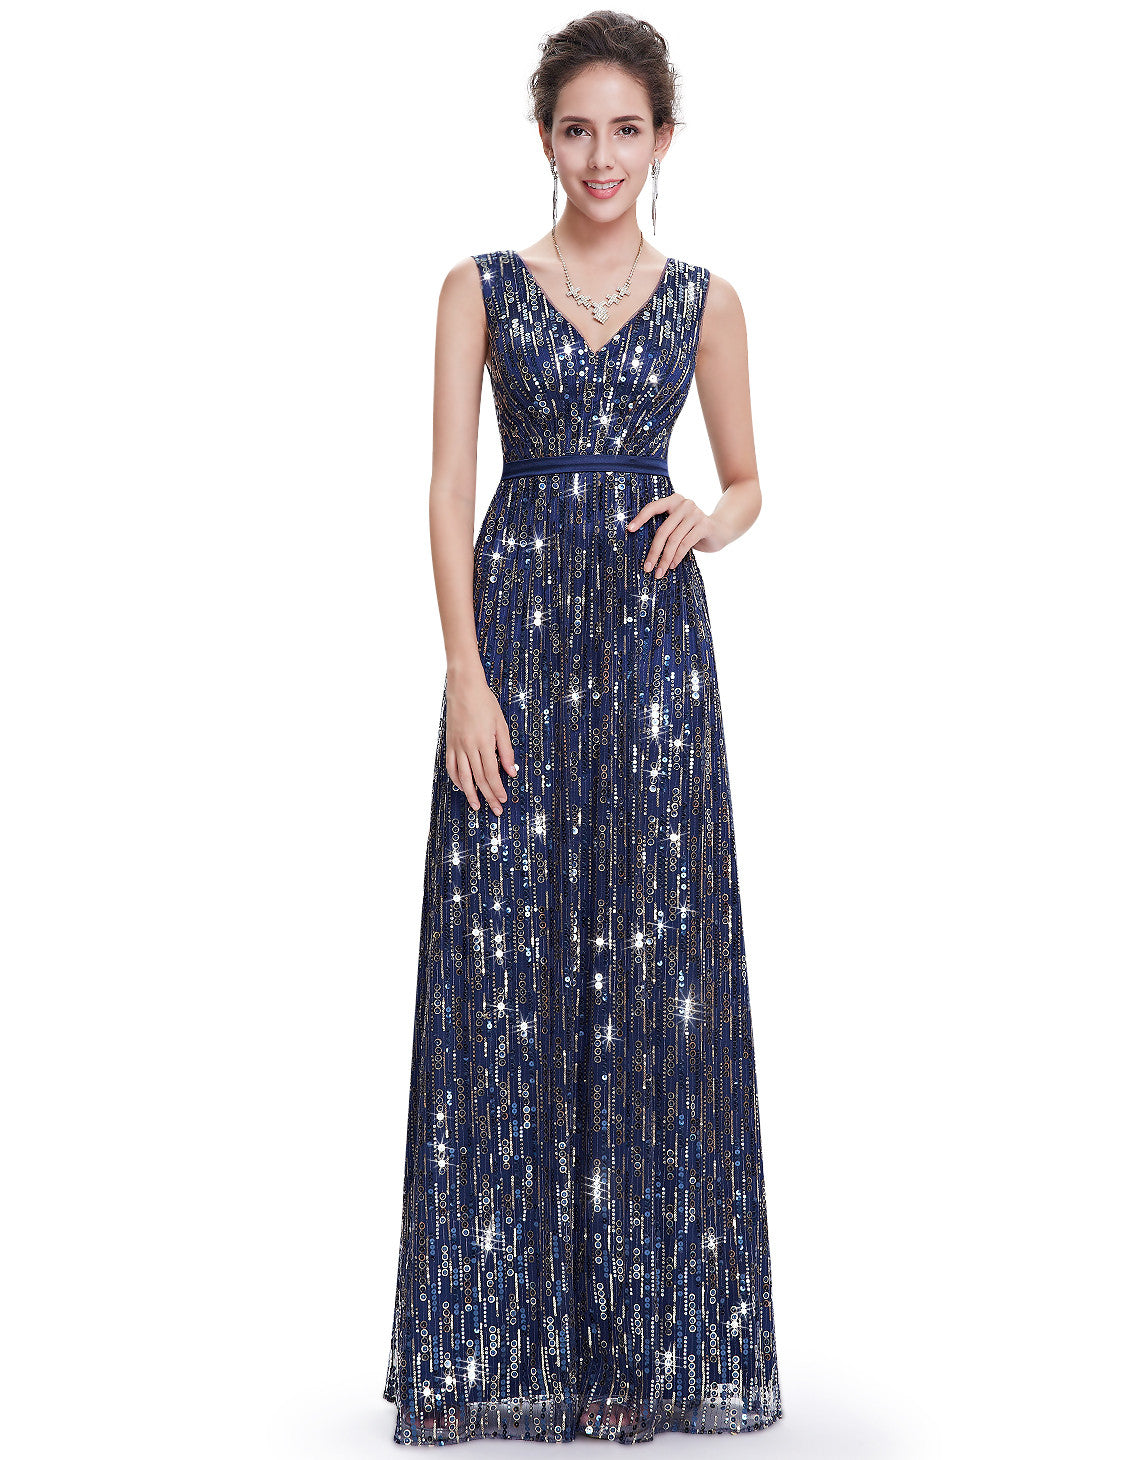 Obeige Elegant Navy Blue V-neck Long Dress